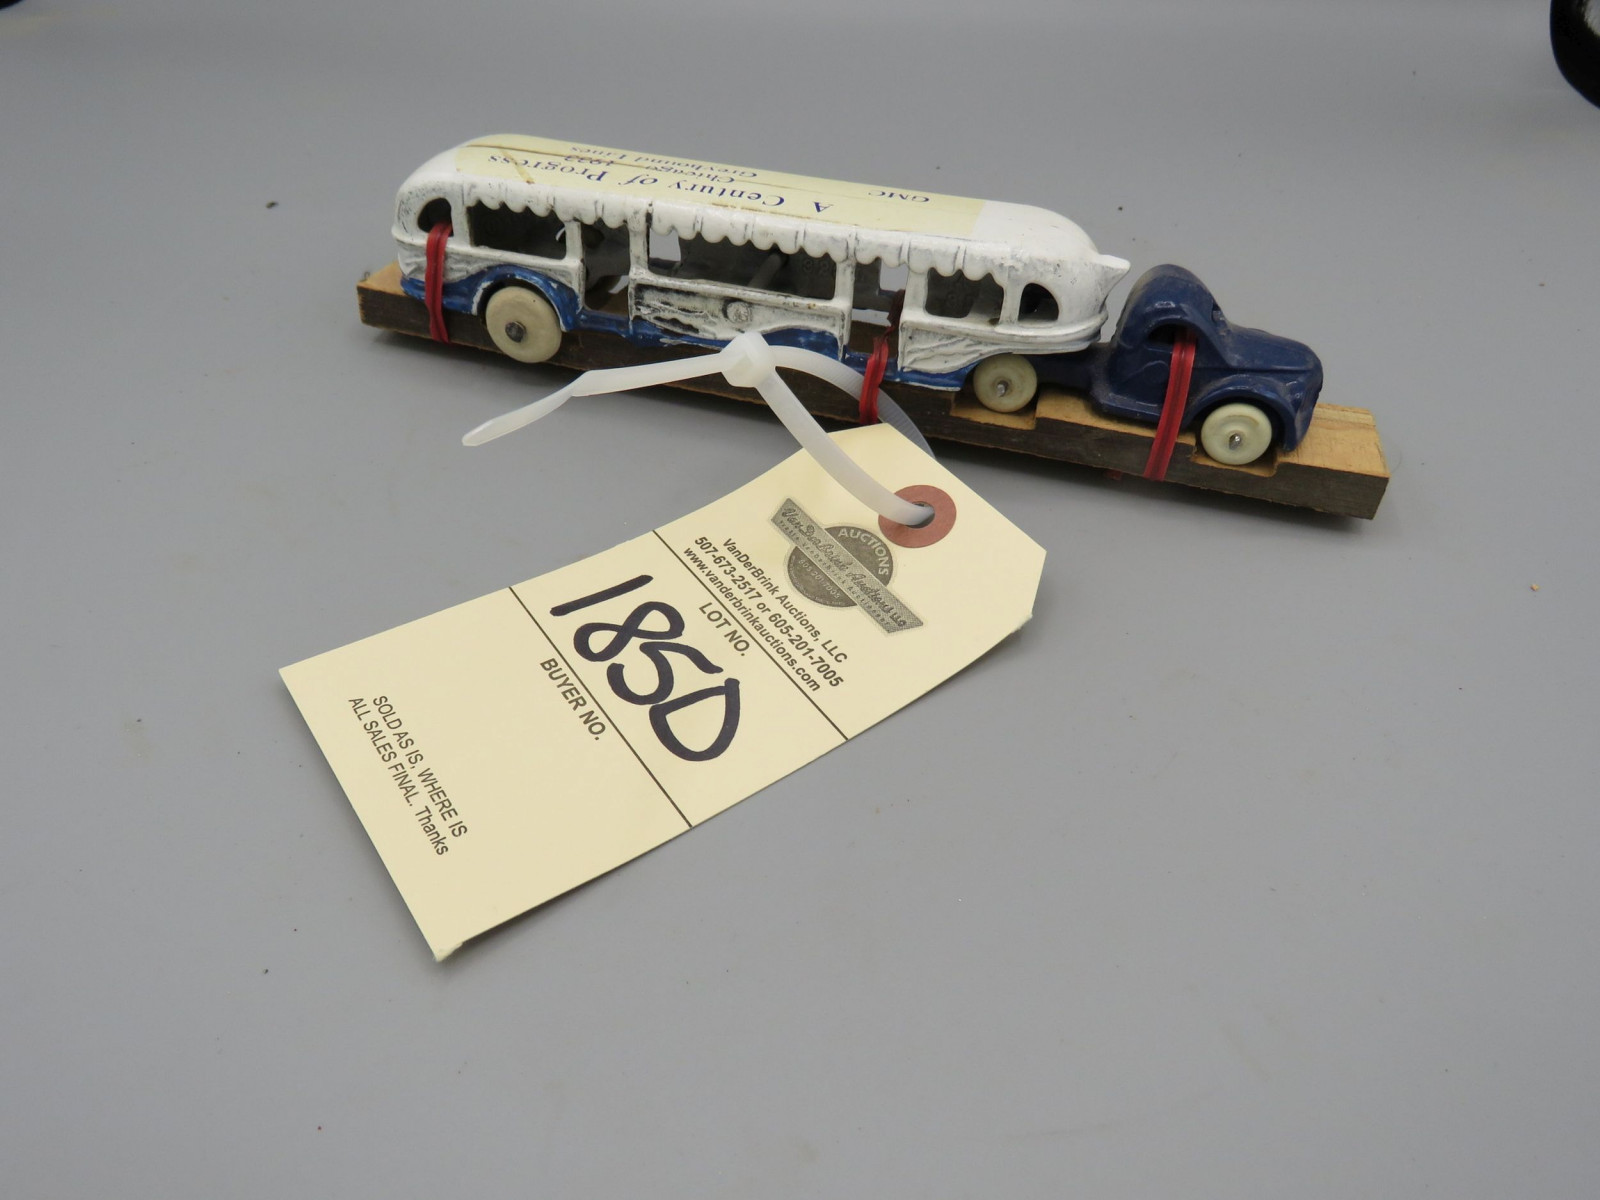 Arcade Cast Iron 1933 Chicago Worlds Fair Greyhound Touring Bus - Image 1